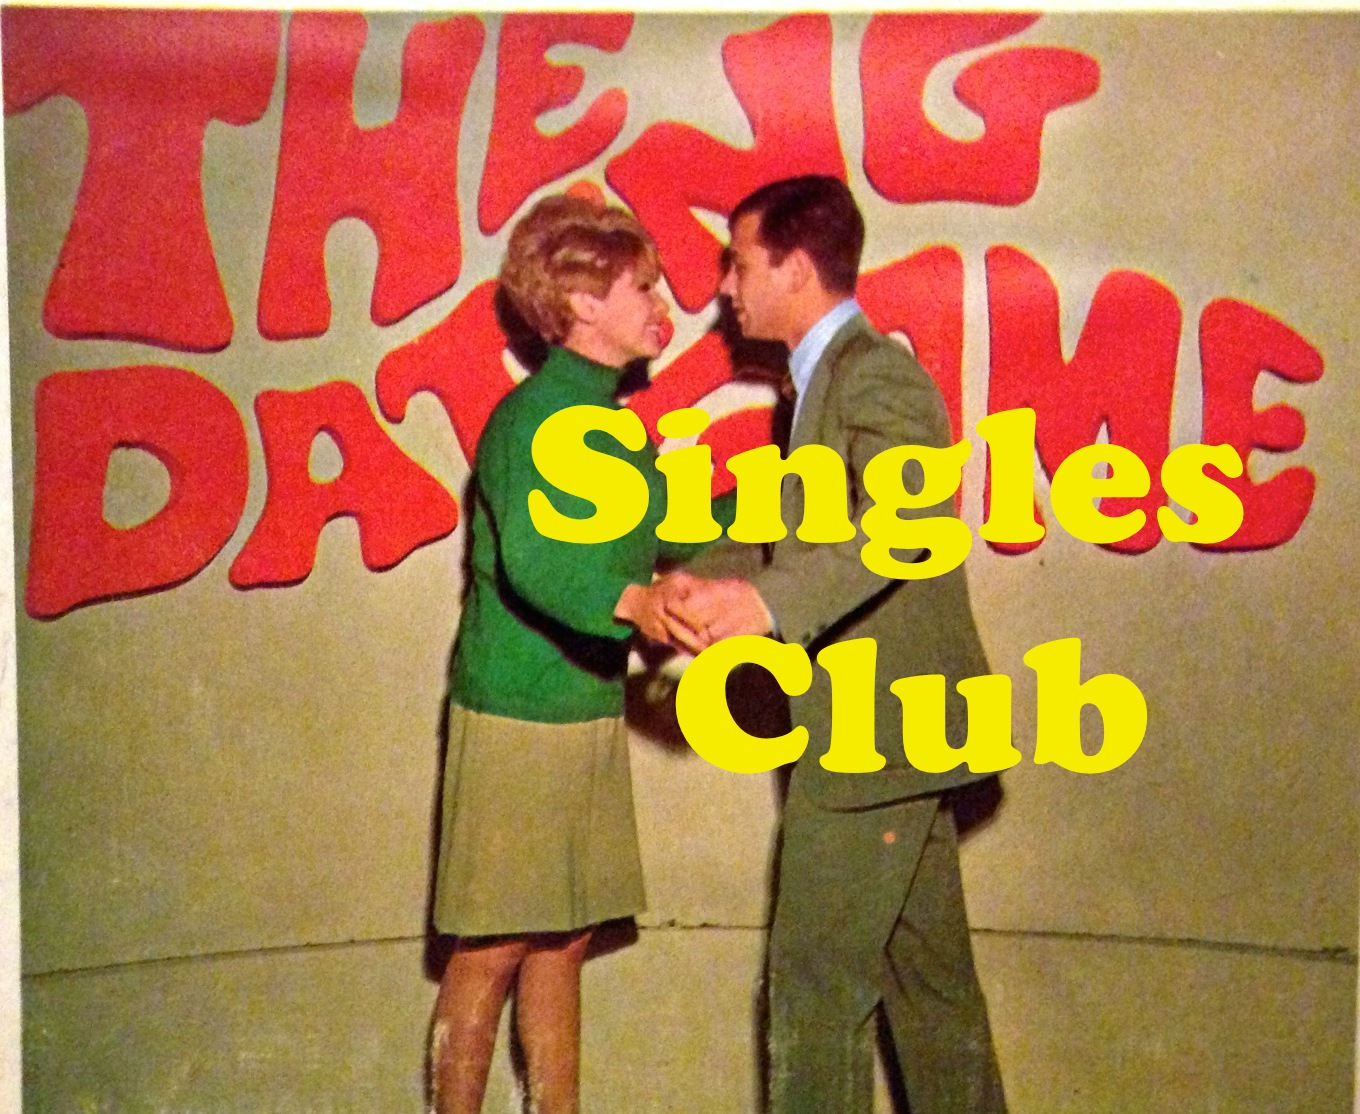 singles dating clubs Crushlab, san francisco's underground singles dating night parties in a mission district night club in sf tex and cat euro circle, an informal group of europeans, europhiles, and expats, sponsors parties in san francisco, marc james, 415-630-0007, djmvb1@gmailcom.